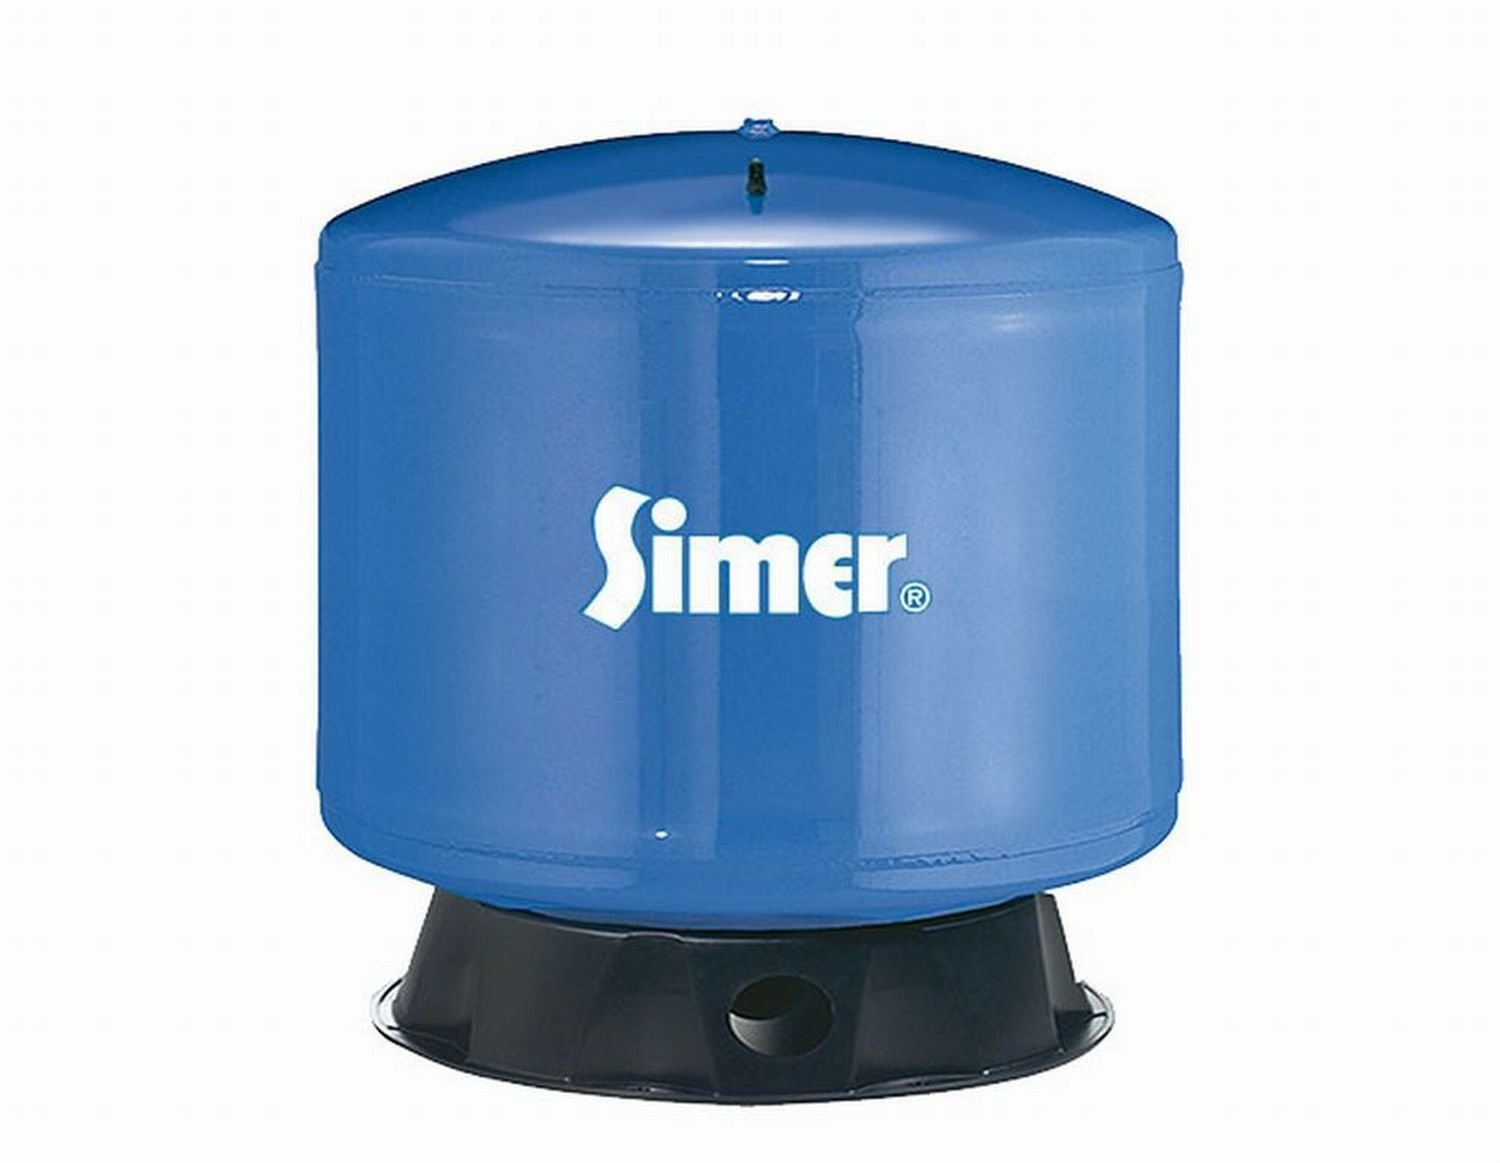 Pentair Water-Flotec-Simer VT19 19 Gallon Vertical Pre-Charged Bladder Tank, Blue